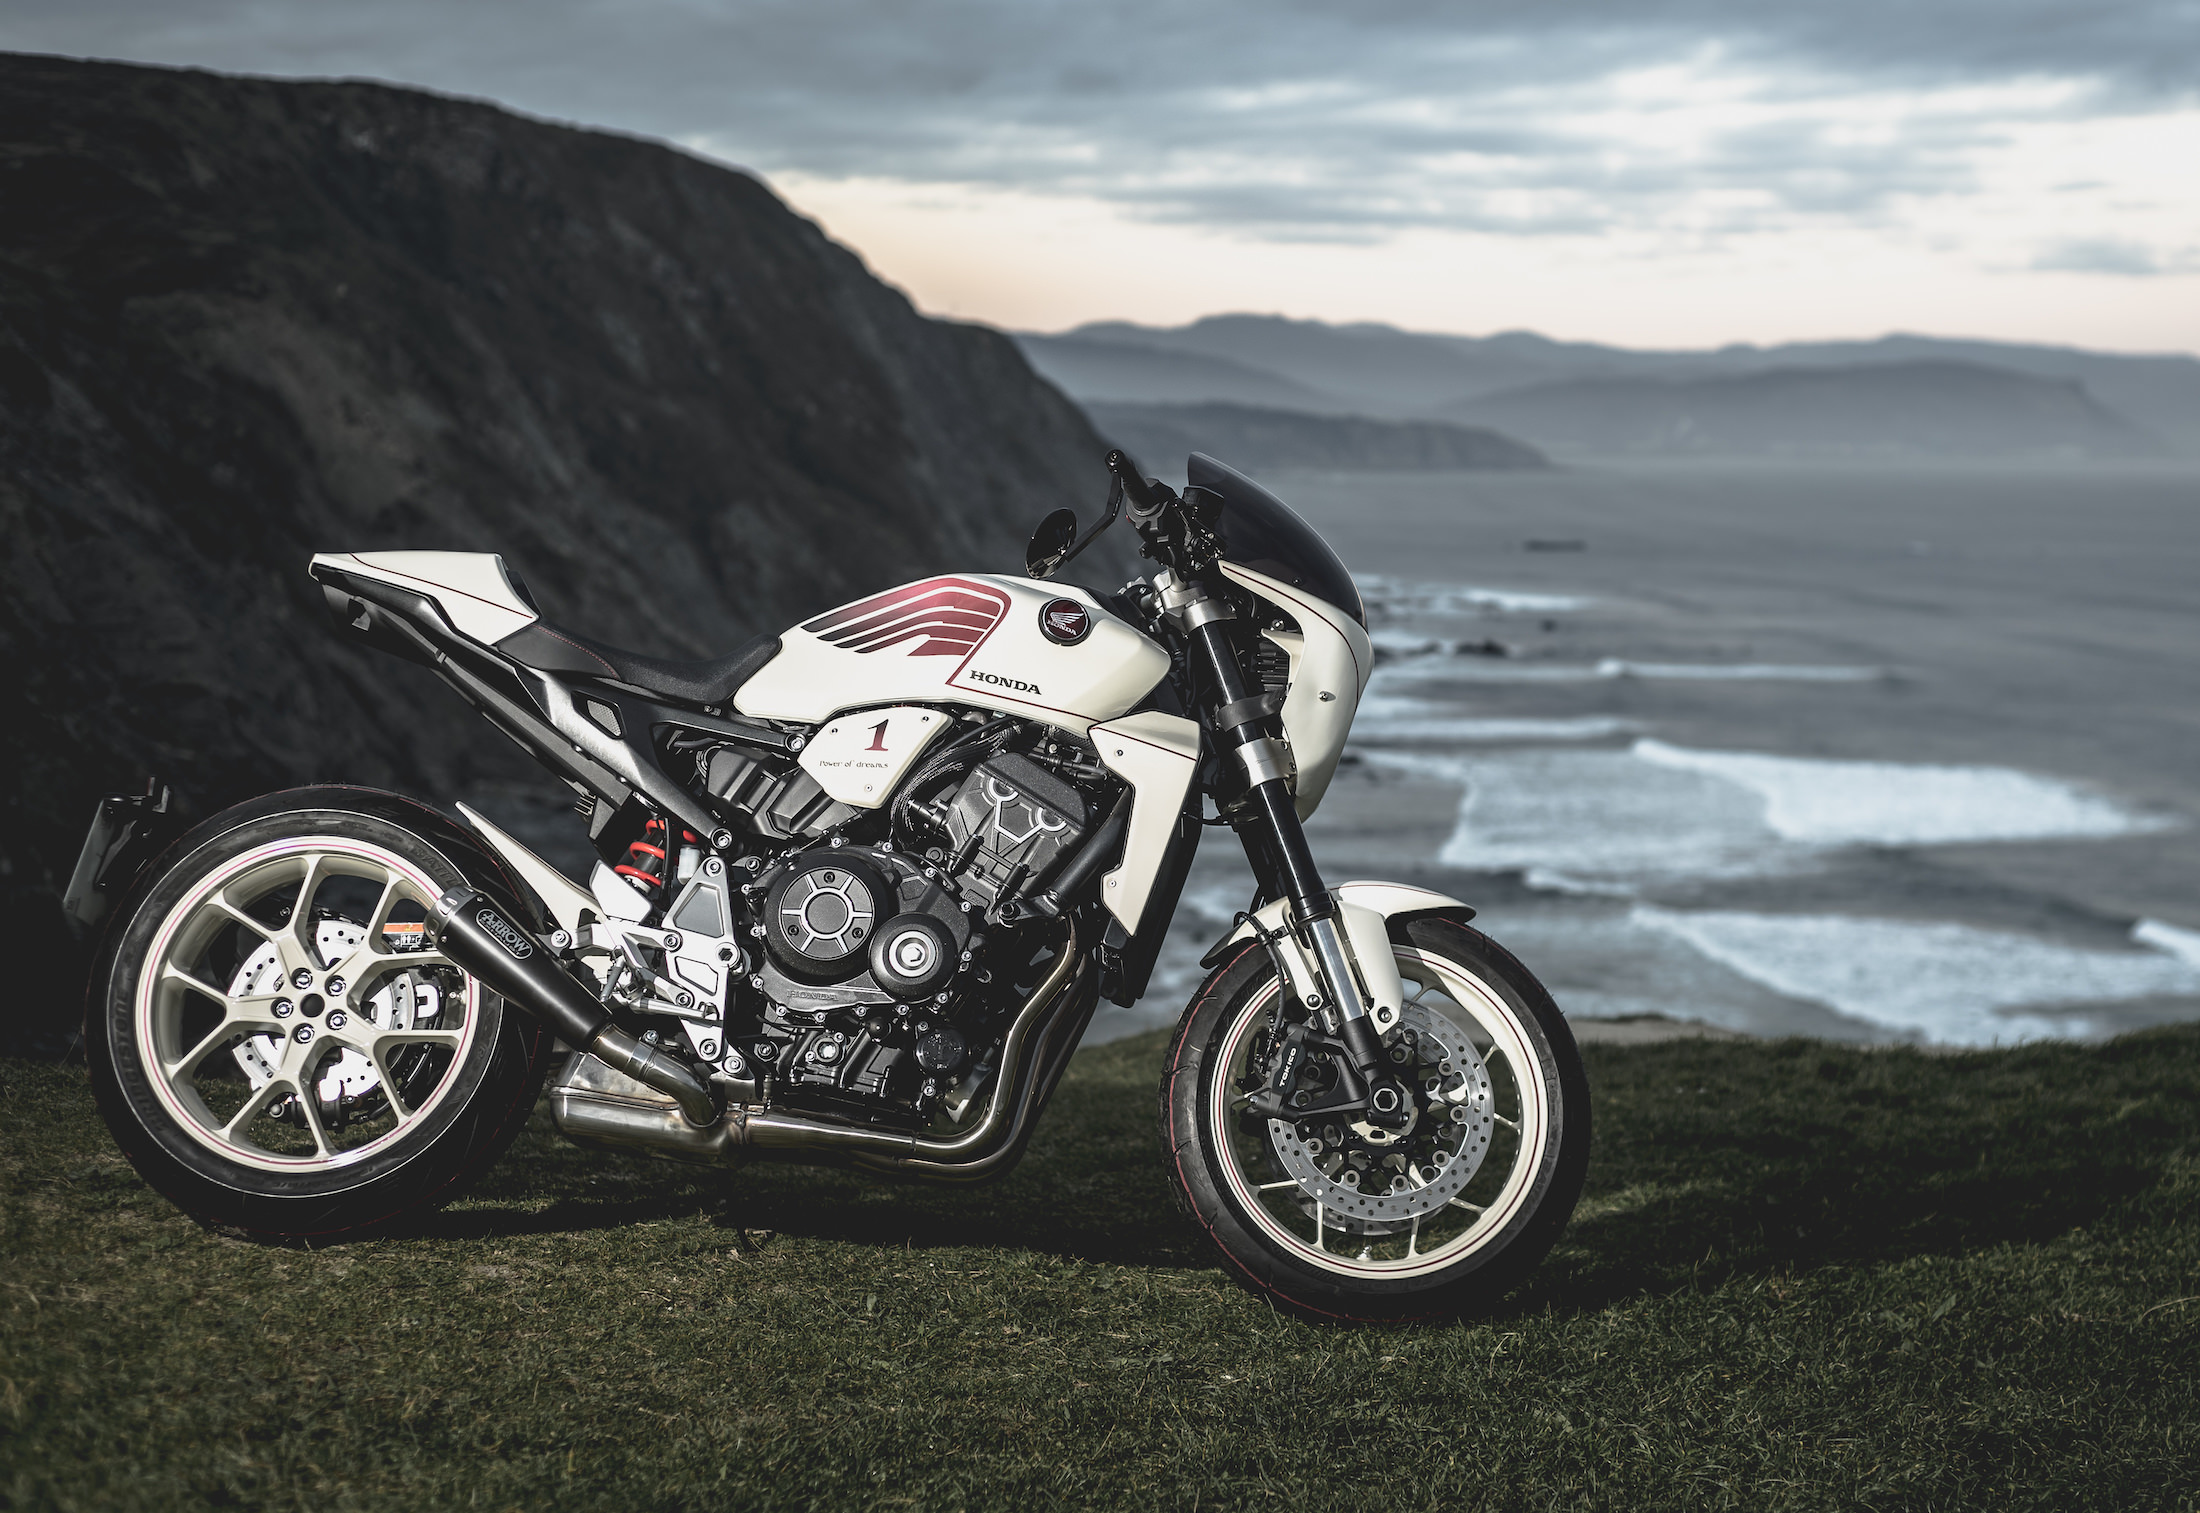 The Honda Cb1000r 13 New Customs From Spain Portugal And The